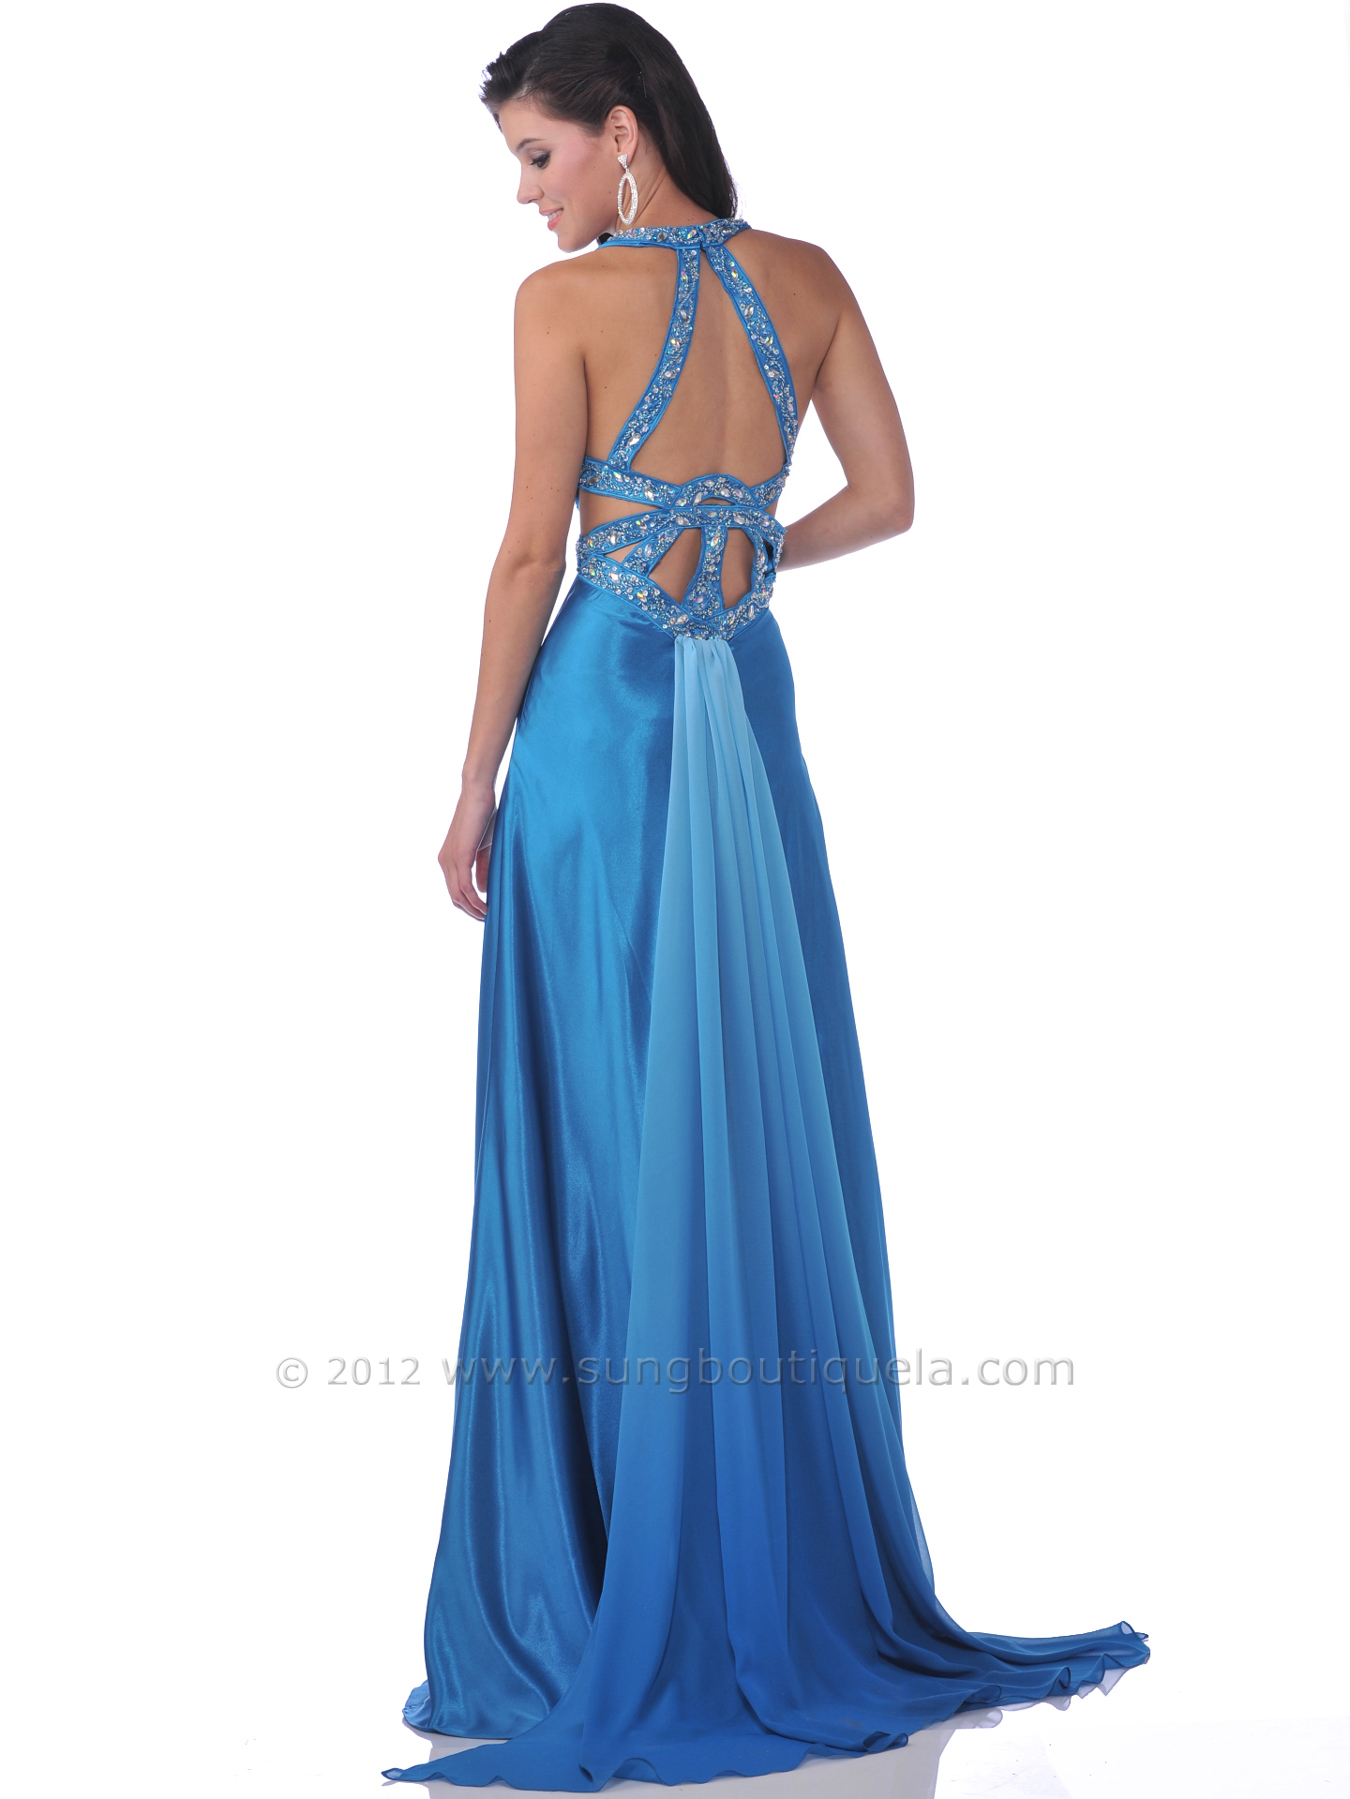 Teal Halter Cut Out Prom Dress with Slit | Sung Boutique L.A.